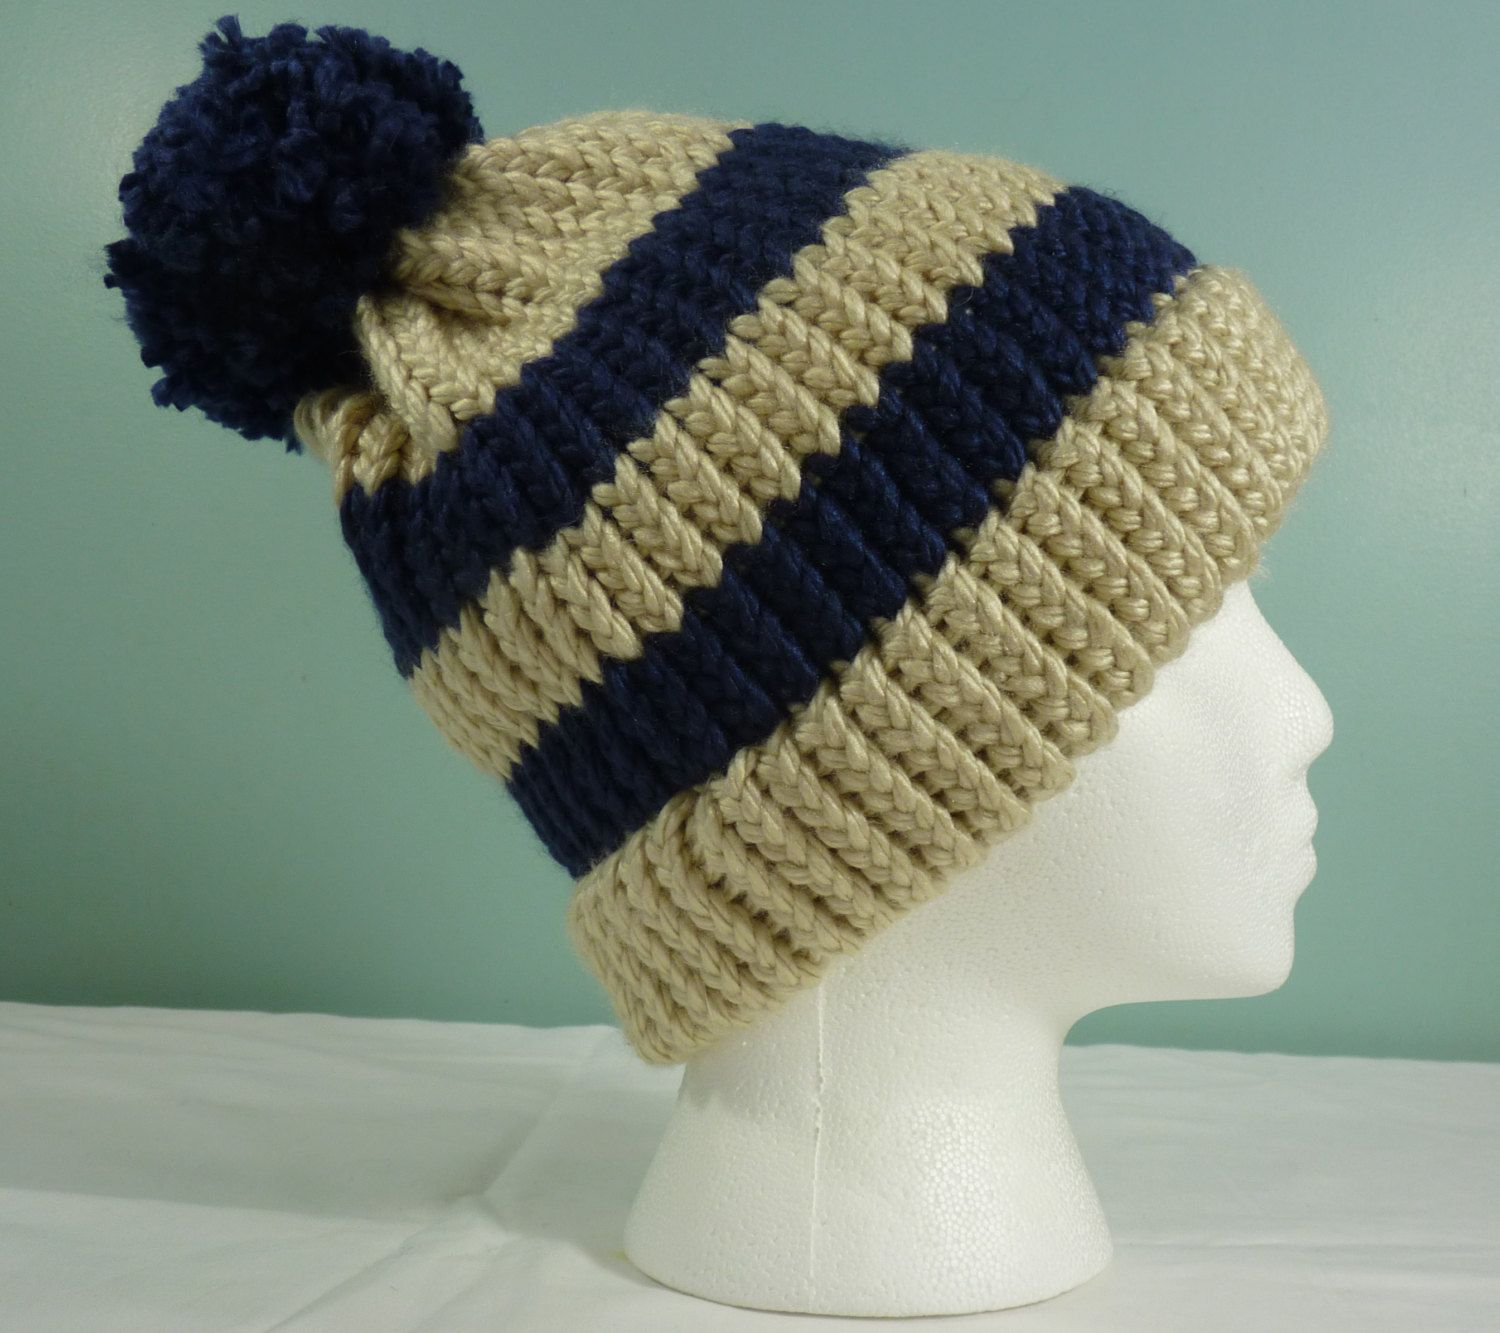 Cream and Navy Stripe Hat, Unisex Knit Hat, Mens Winter Hat, Stocking Cap, Wo...